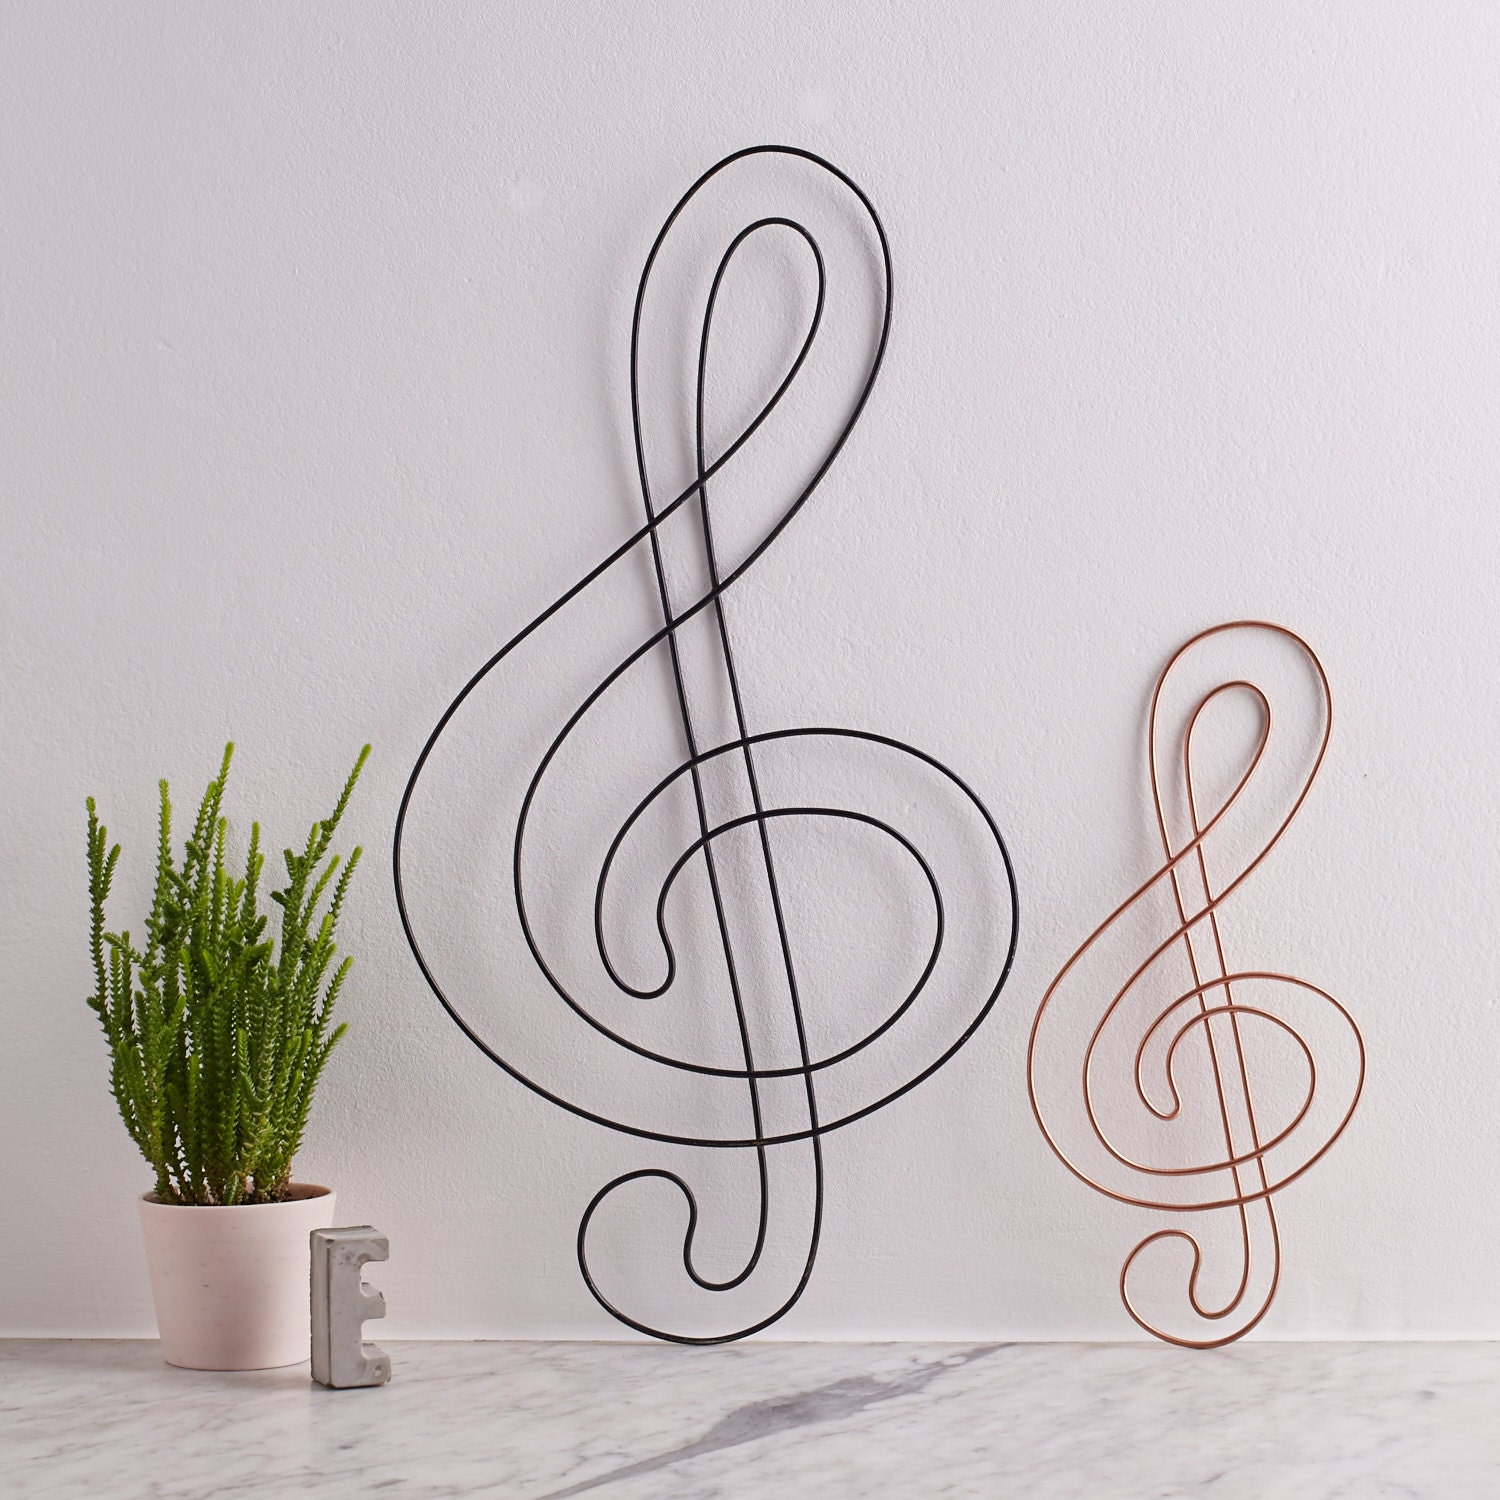 Wire Treble Clef treble clef Music gift gift for musicians